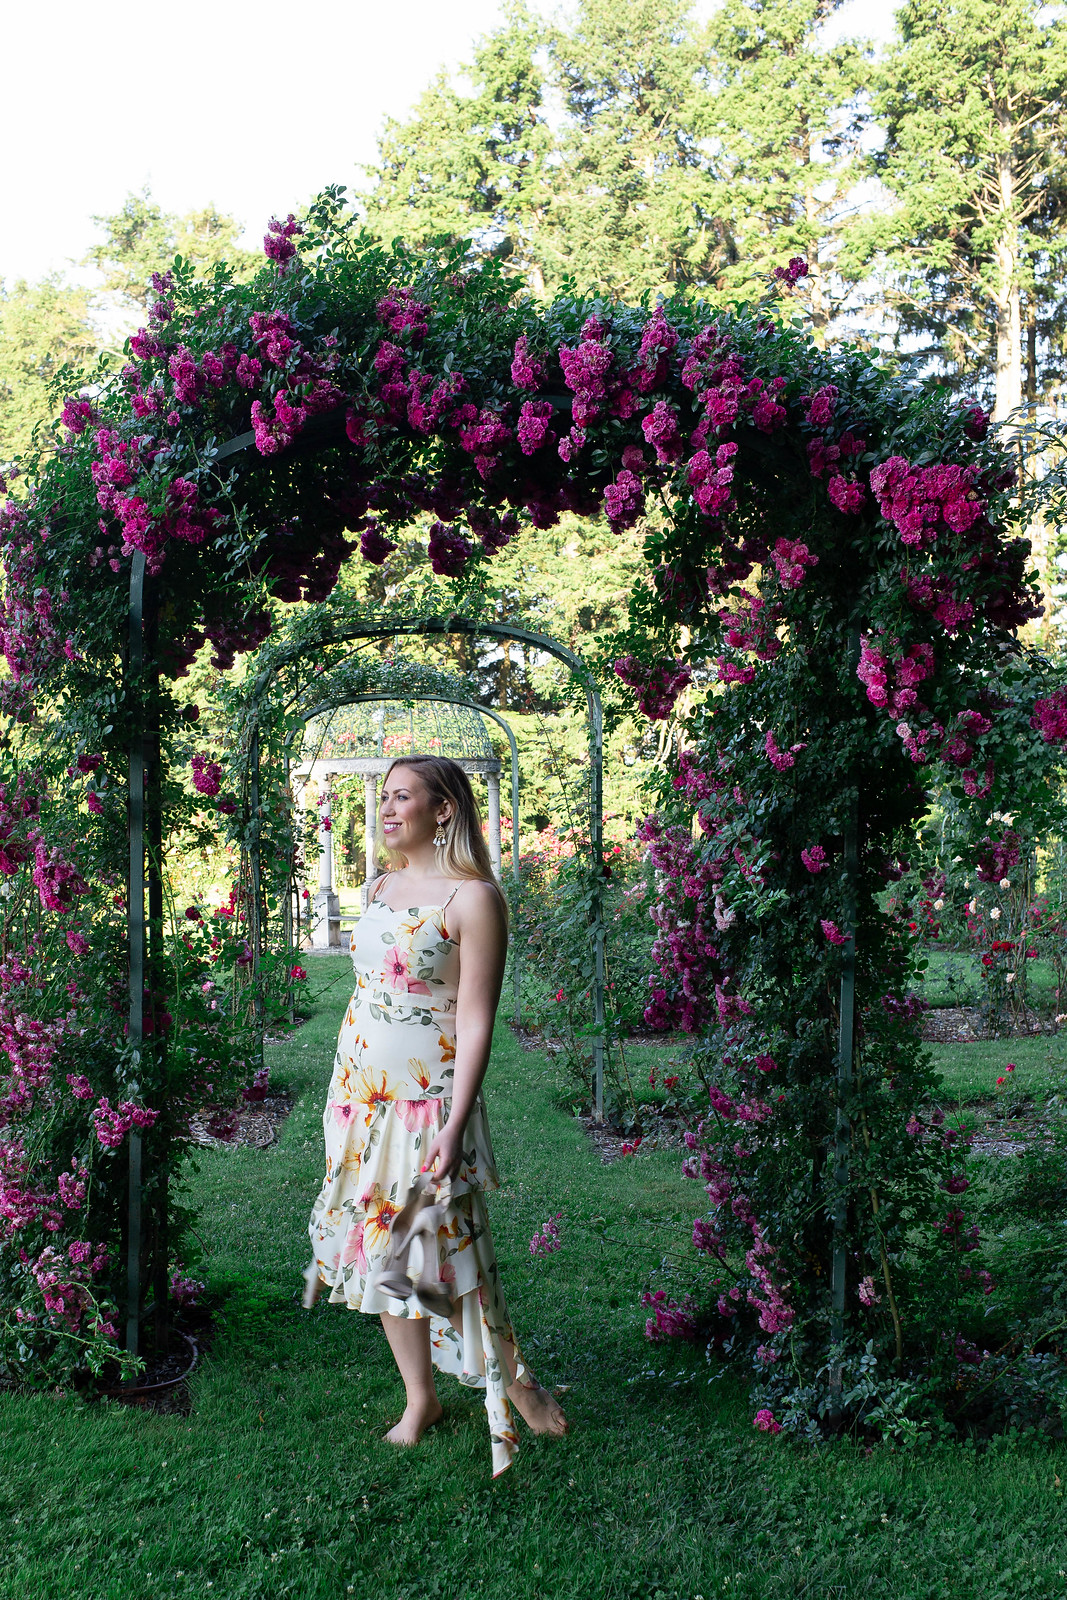 Lyndhurst Mansion Rose Garden Tarrytown Most Instagrammable Places in Westchester County New York